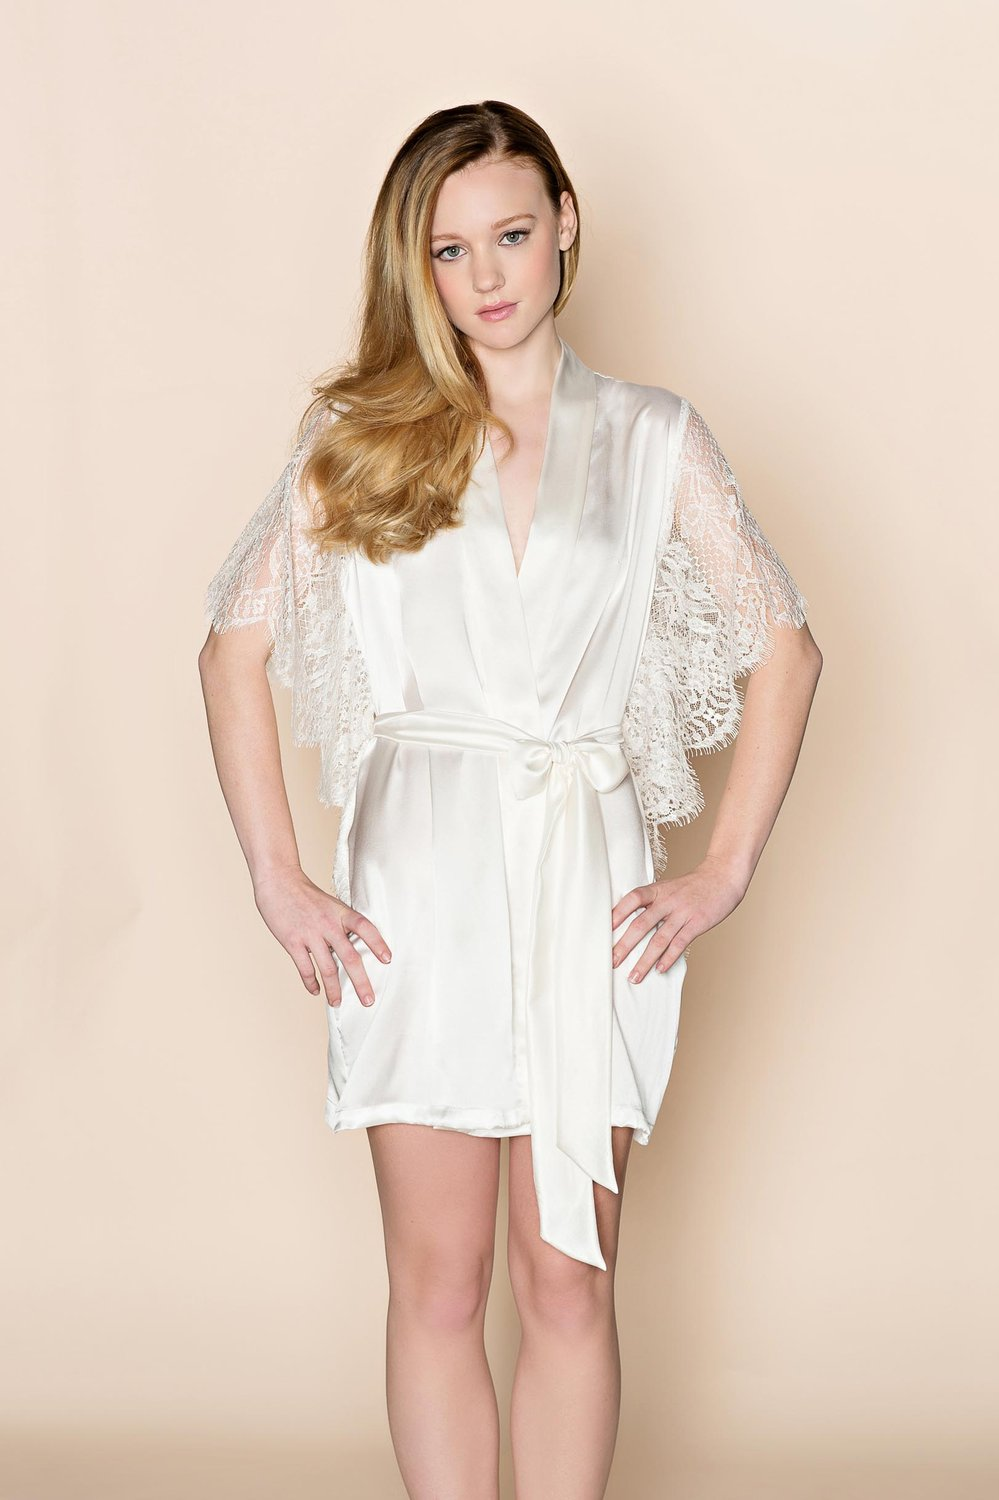 Grace winged Silk & Lace Bridal Kimono Robe in Ivory Or Off-White